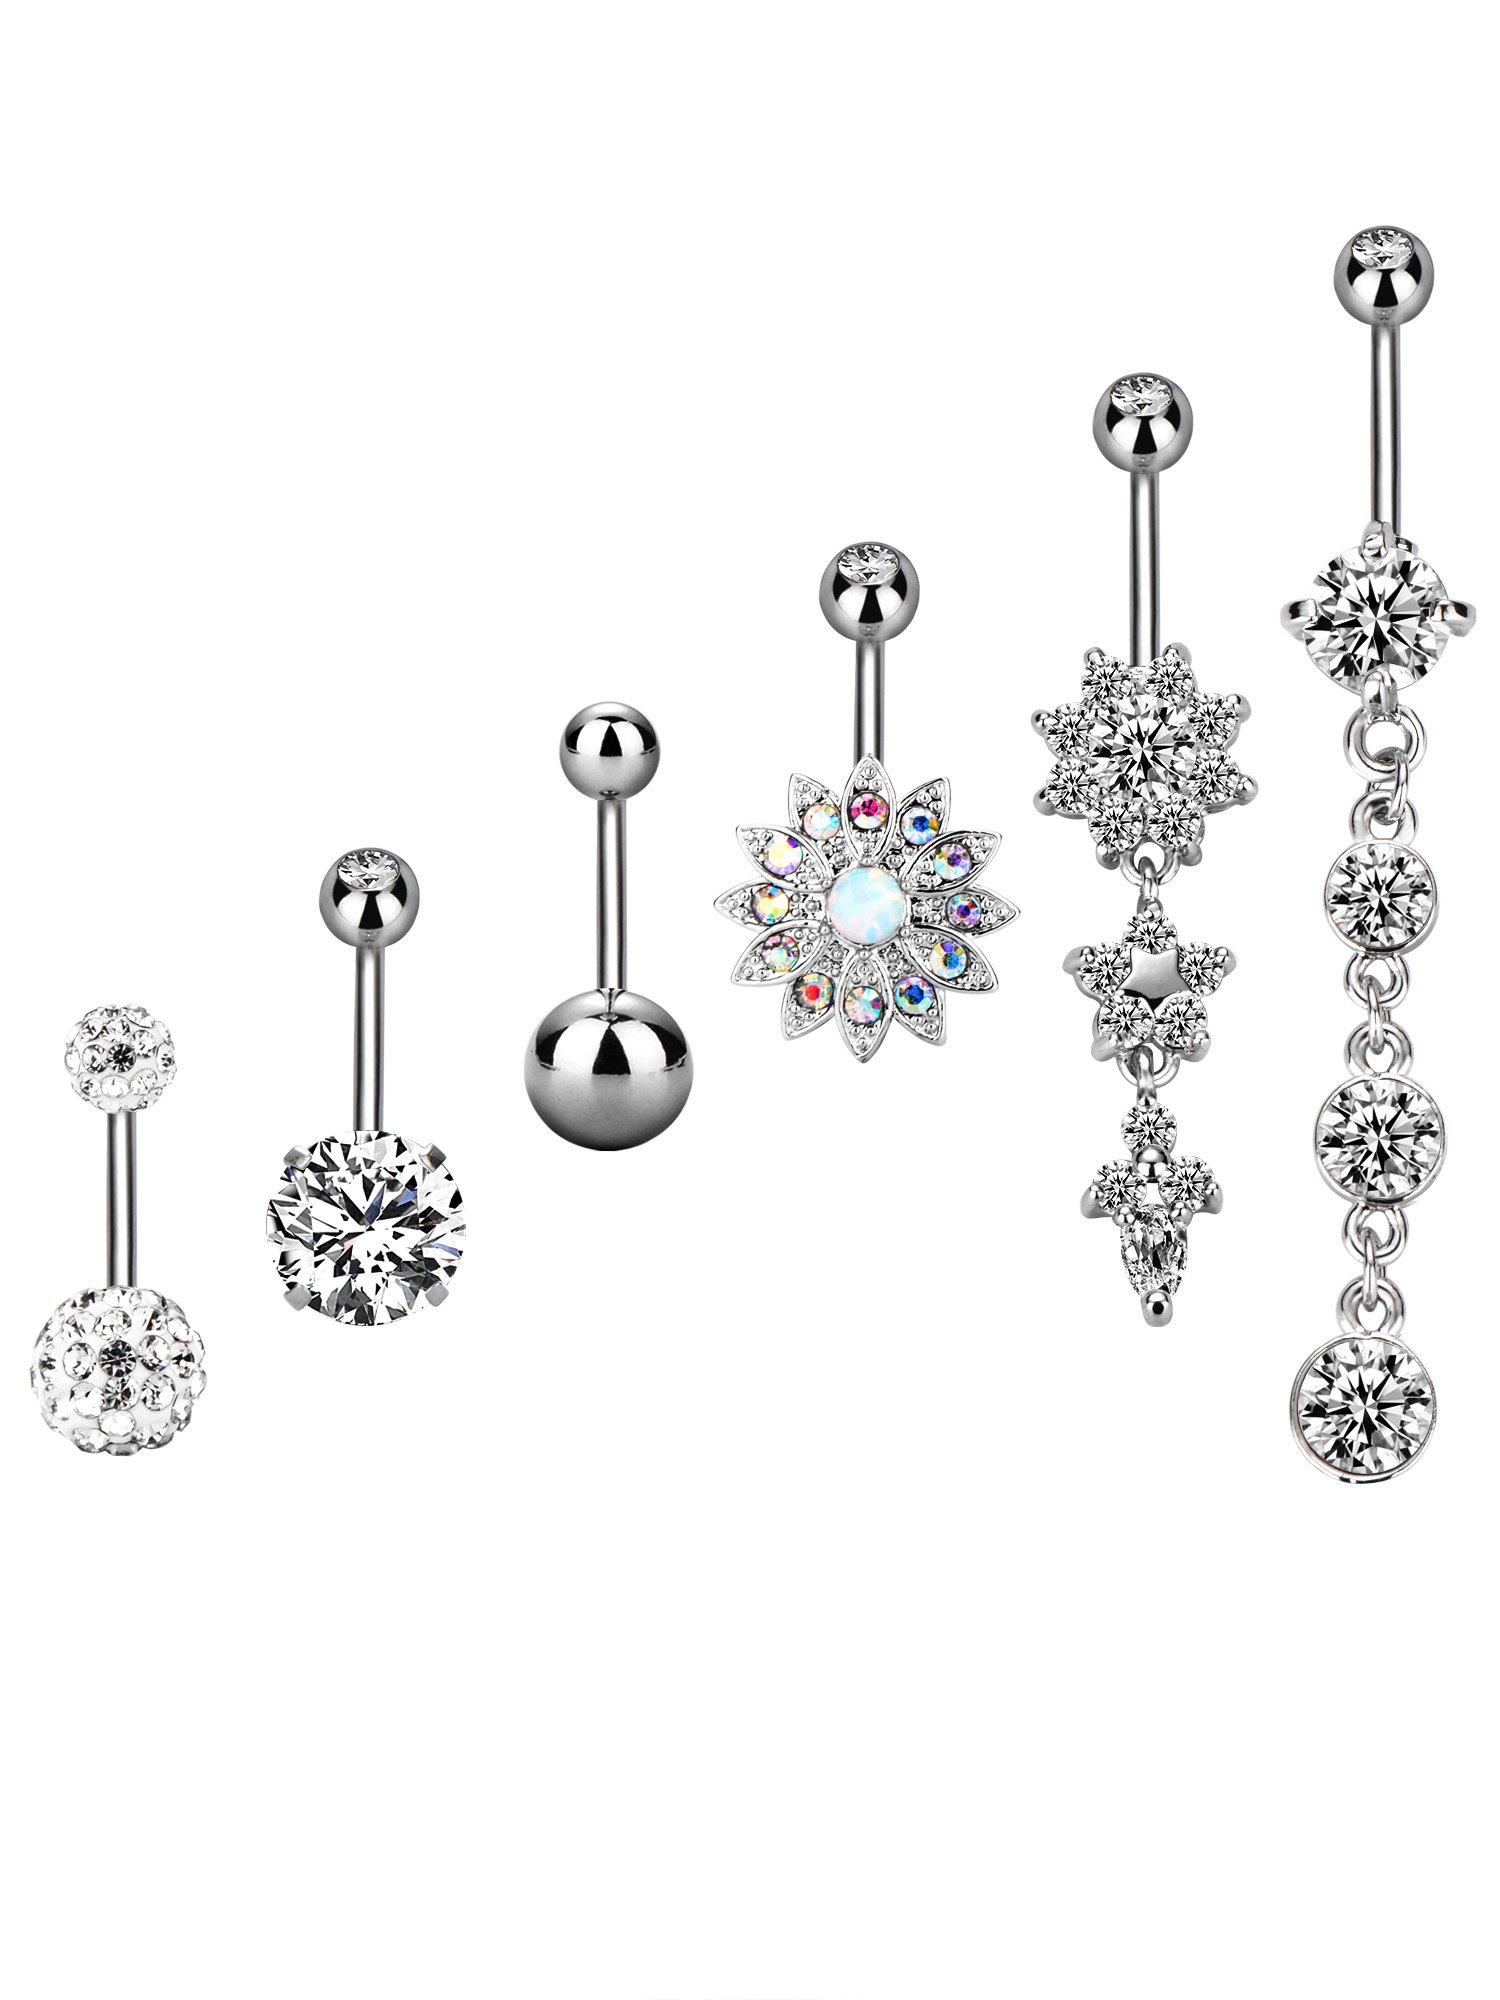 BBTO 6 Pieces 14G Stainless Steel Belly Button Rings Navel Curved Barbell Piercing for Women, 6 Styles (Silver Tone)